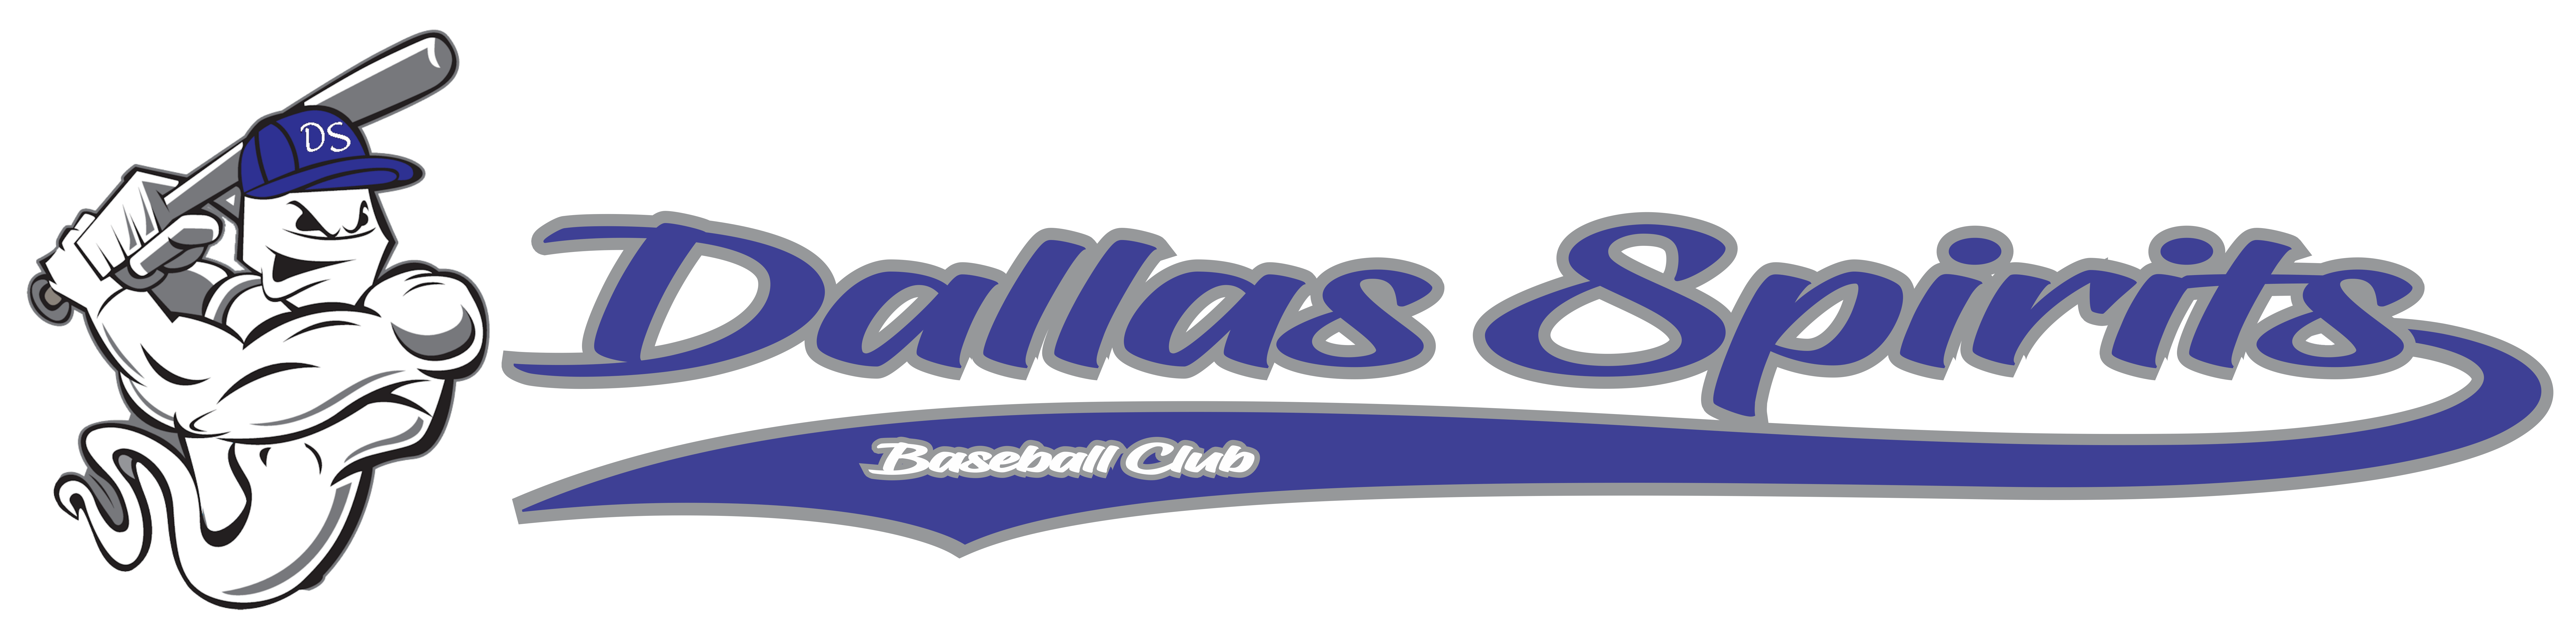 Dallas Spirits Baseball Club